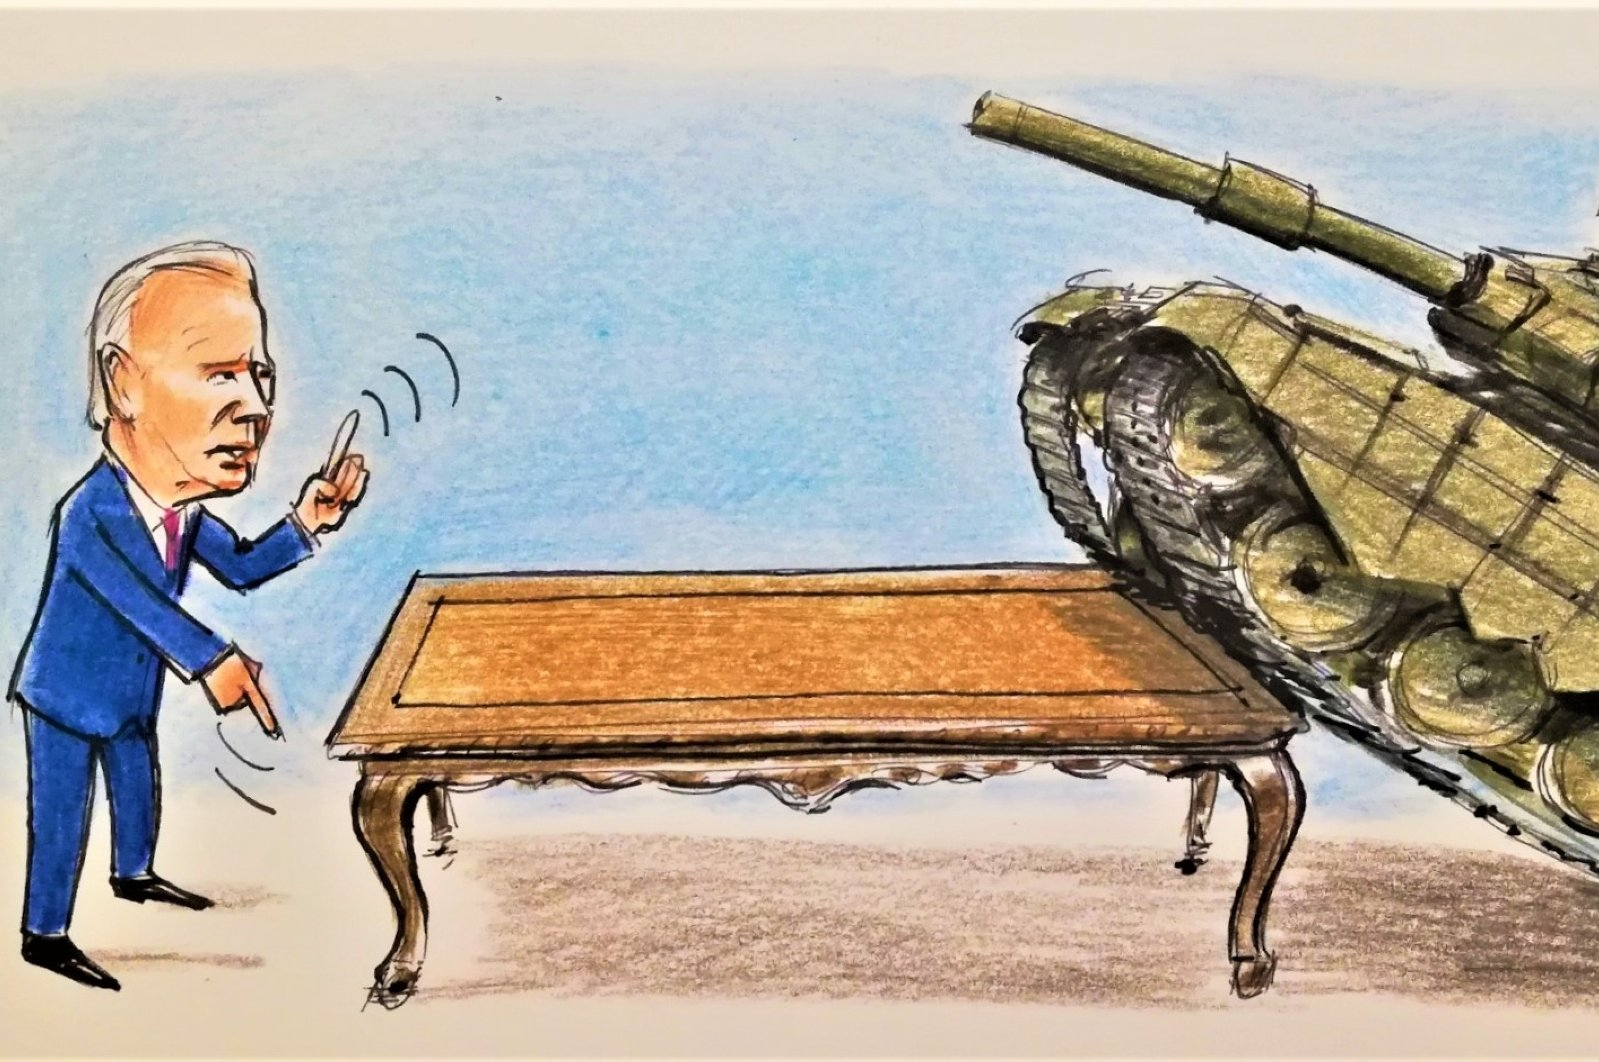 This Illustration by Erhan Yalvaç criticizes Washington and Moscow for escalating the tension over Ukraine.